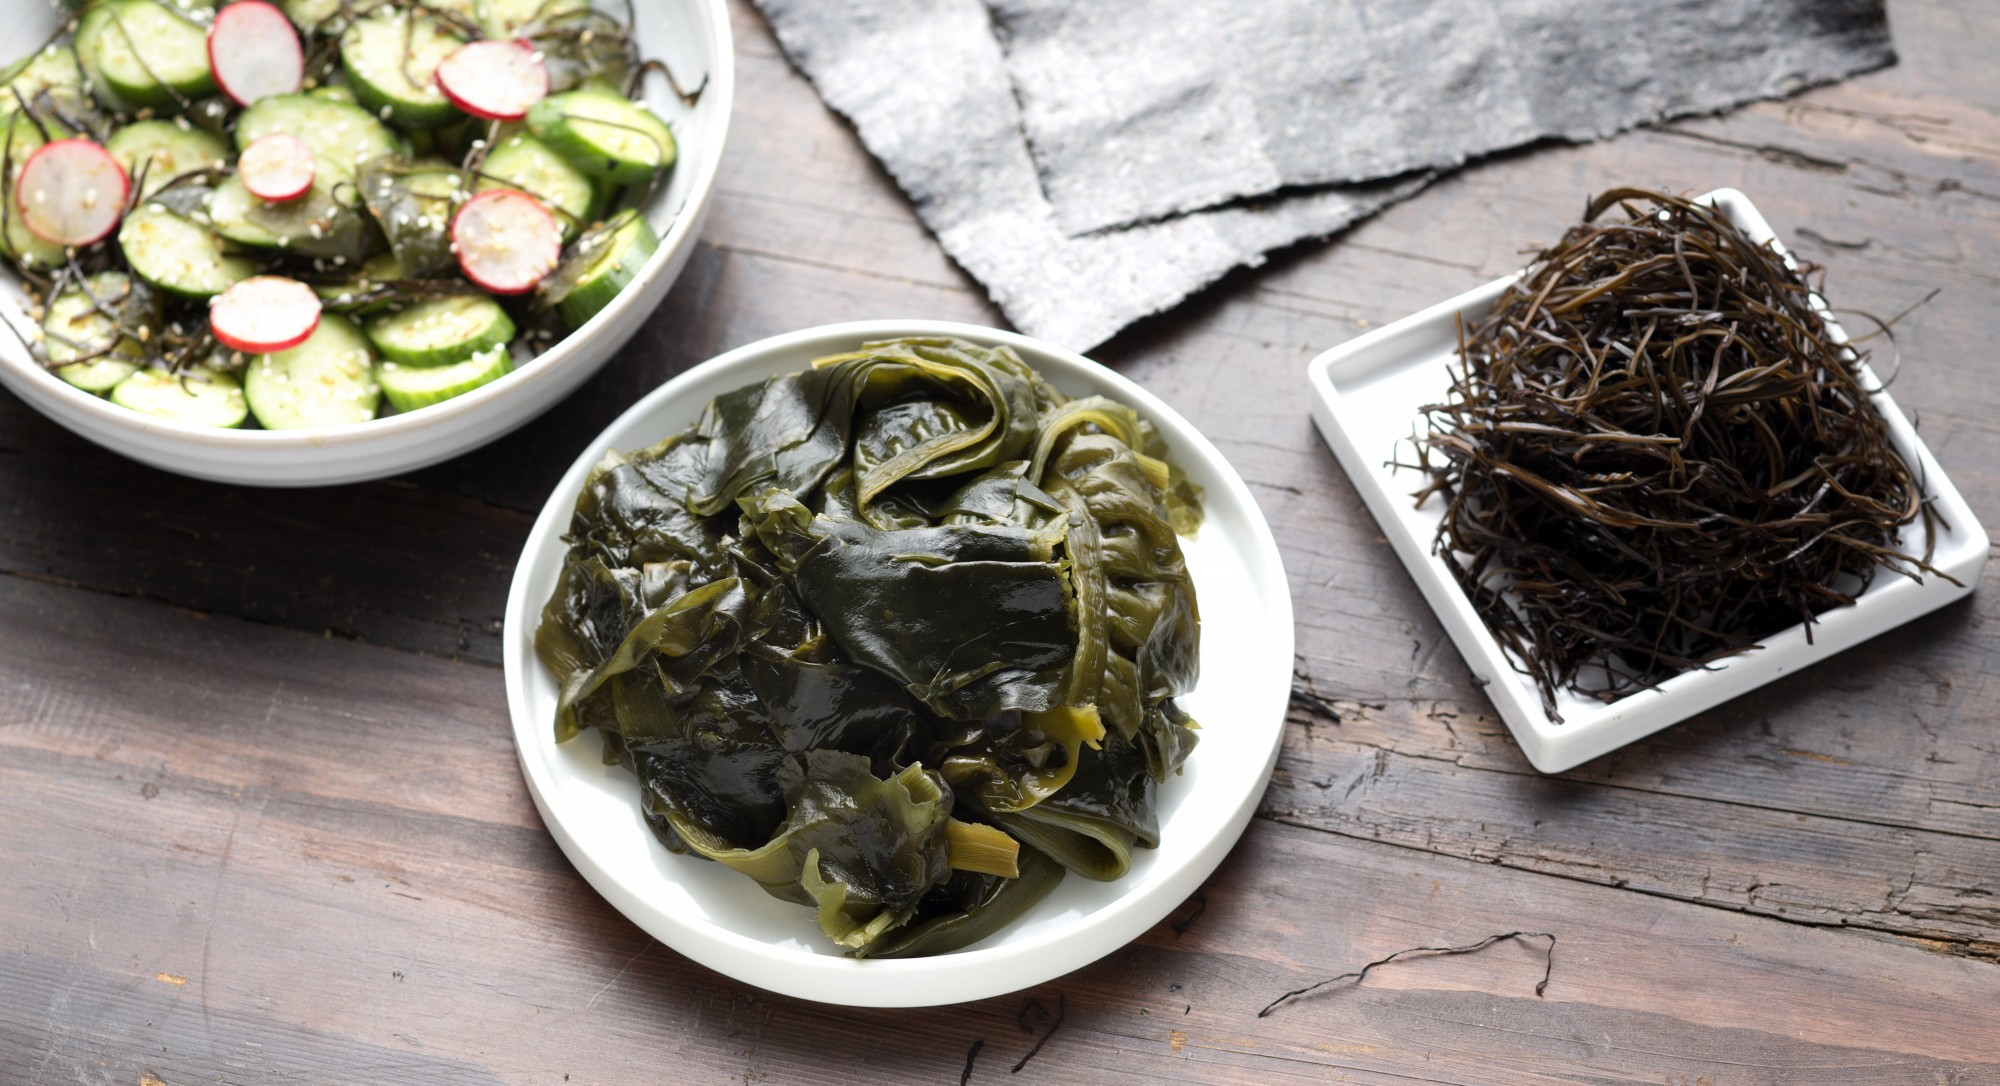 Seaweed Benefits: Is Seaweed Good For You?